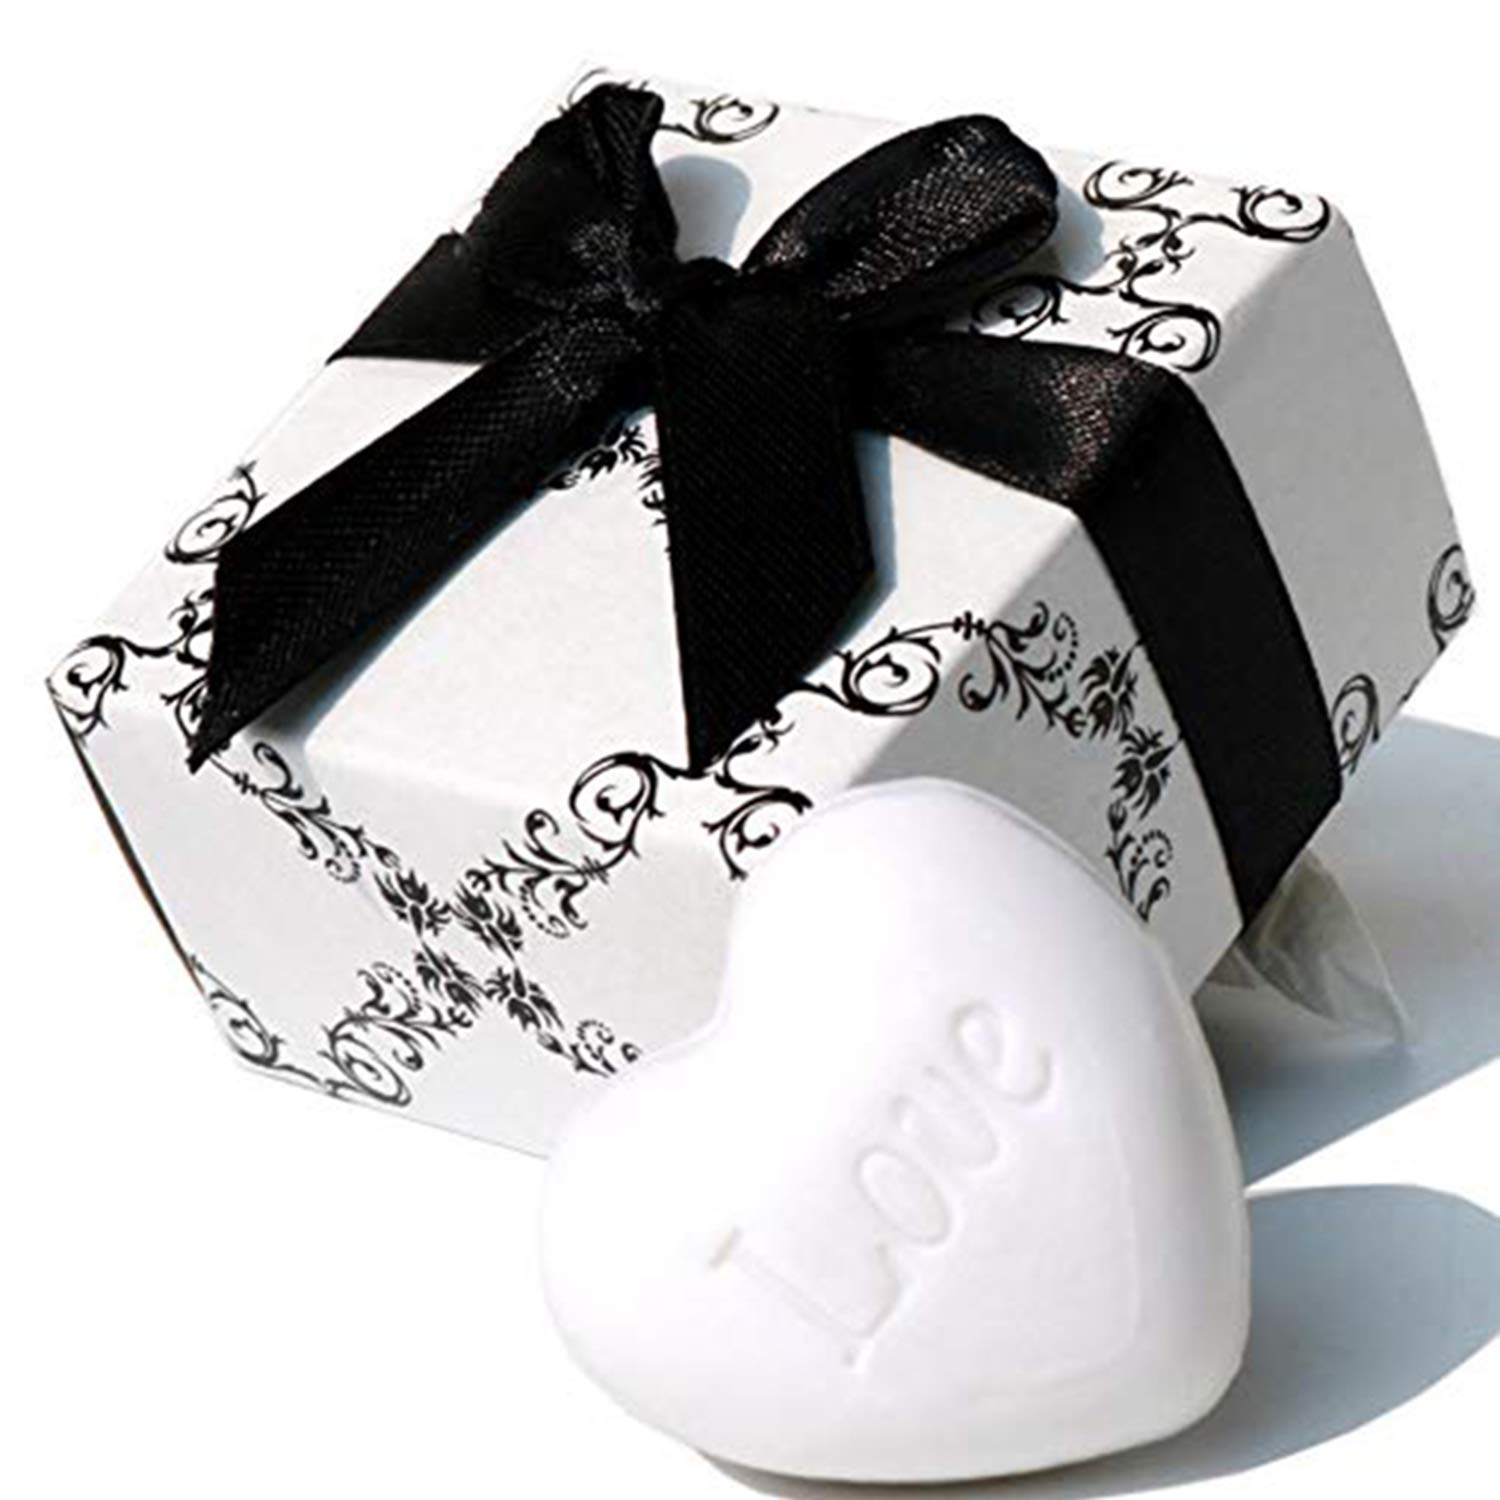 AiXiAng Cute Mini 24 Pack Heart Shape Soap Favors for Wedding Favors and Gifts or Baby Shower Soap Favors, Bridal Shower Favors, Housewarming Gifts, Heart Themed Party Table Decorations, Return Gifts, Mothers Day Gifts Soaps